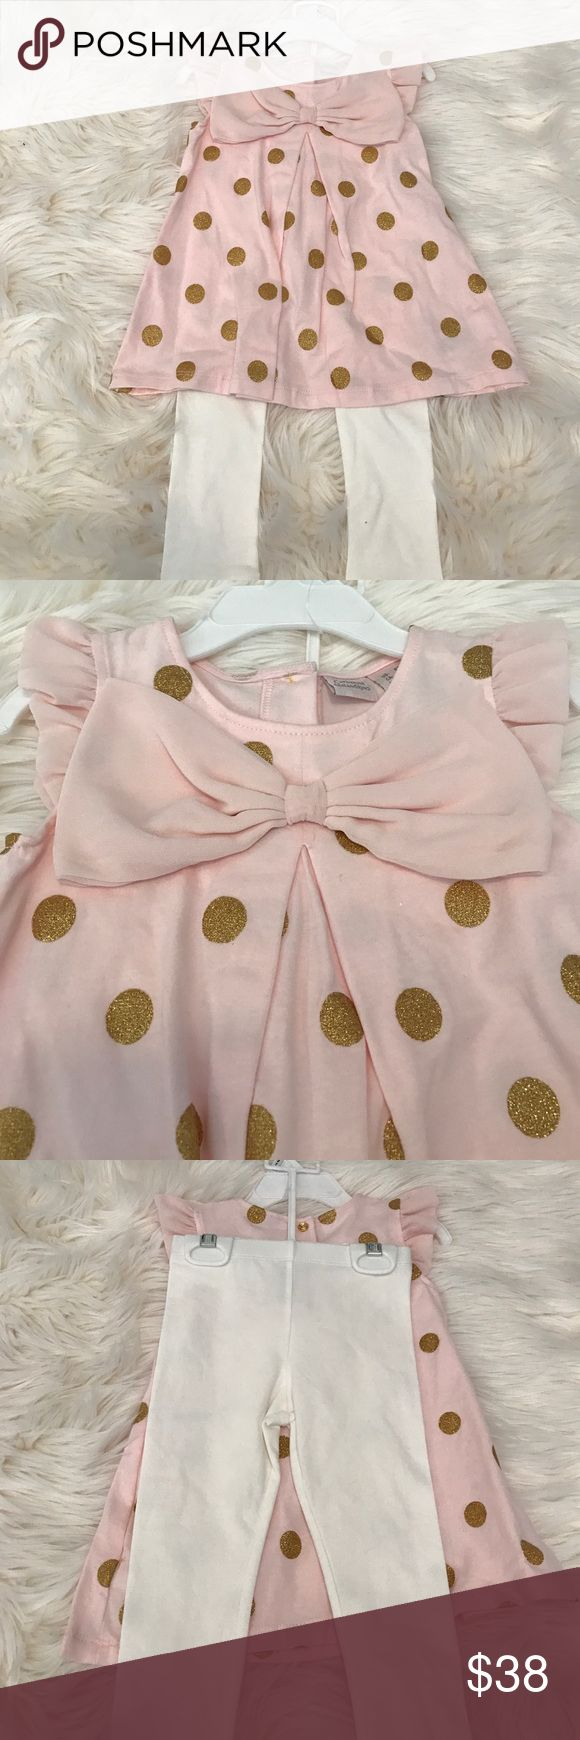 Flash Sale! Catherine Malandrino Tunic Set Catherine Malandrino Pink & Gold Set.  Adorable pink Tunic with bow, gold dots and leggings. Catherine Malandrino Matching Sets